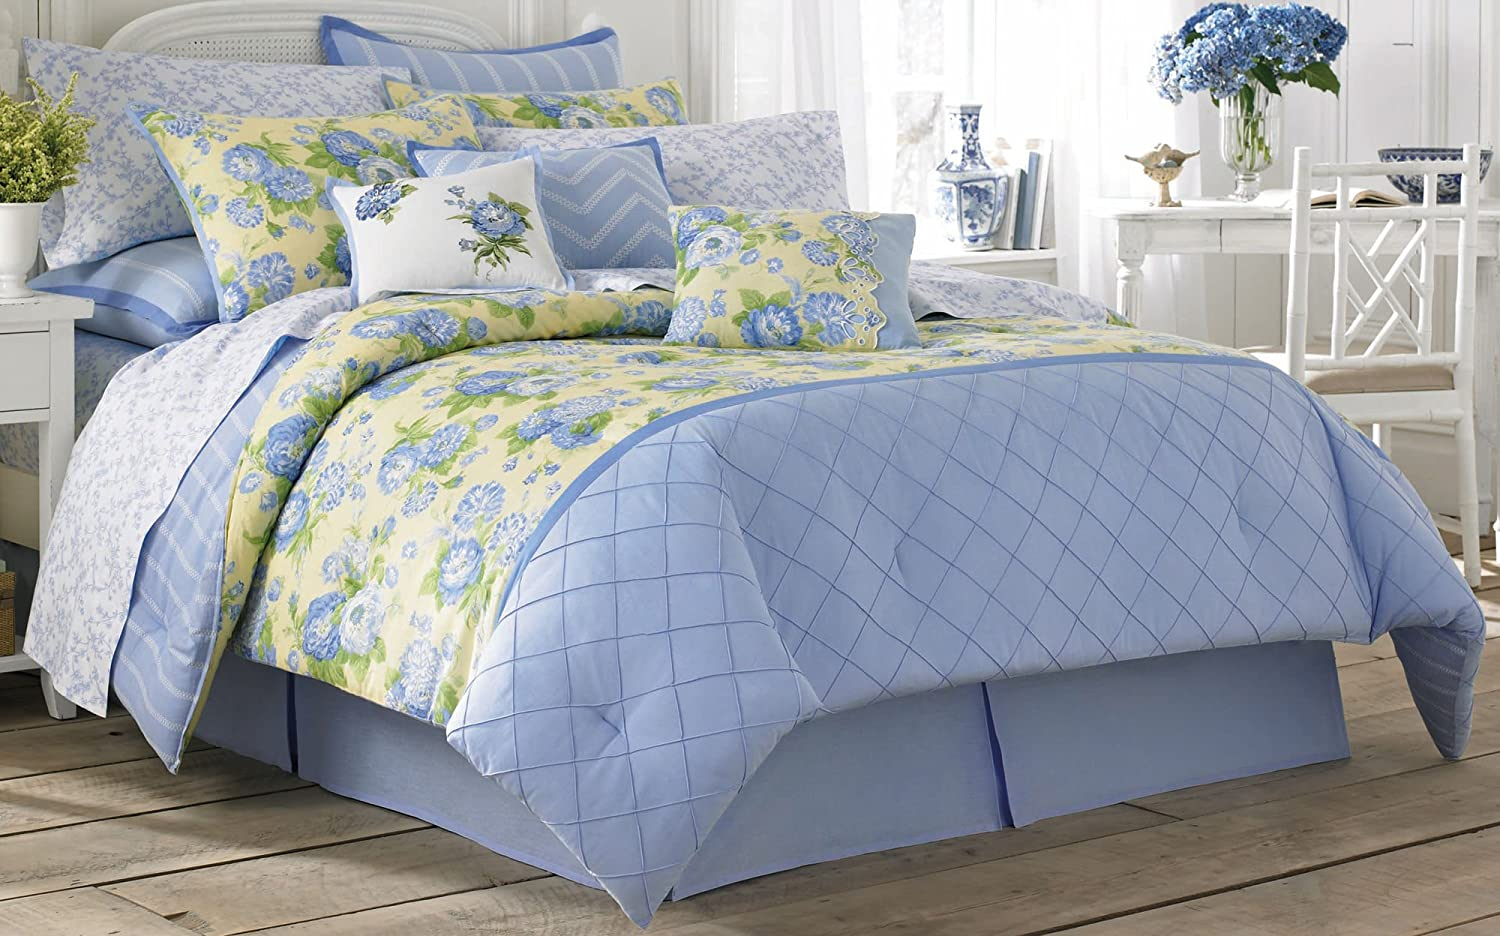 Laura Ashley Salisbury Comforter Set, Blue, King